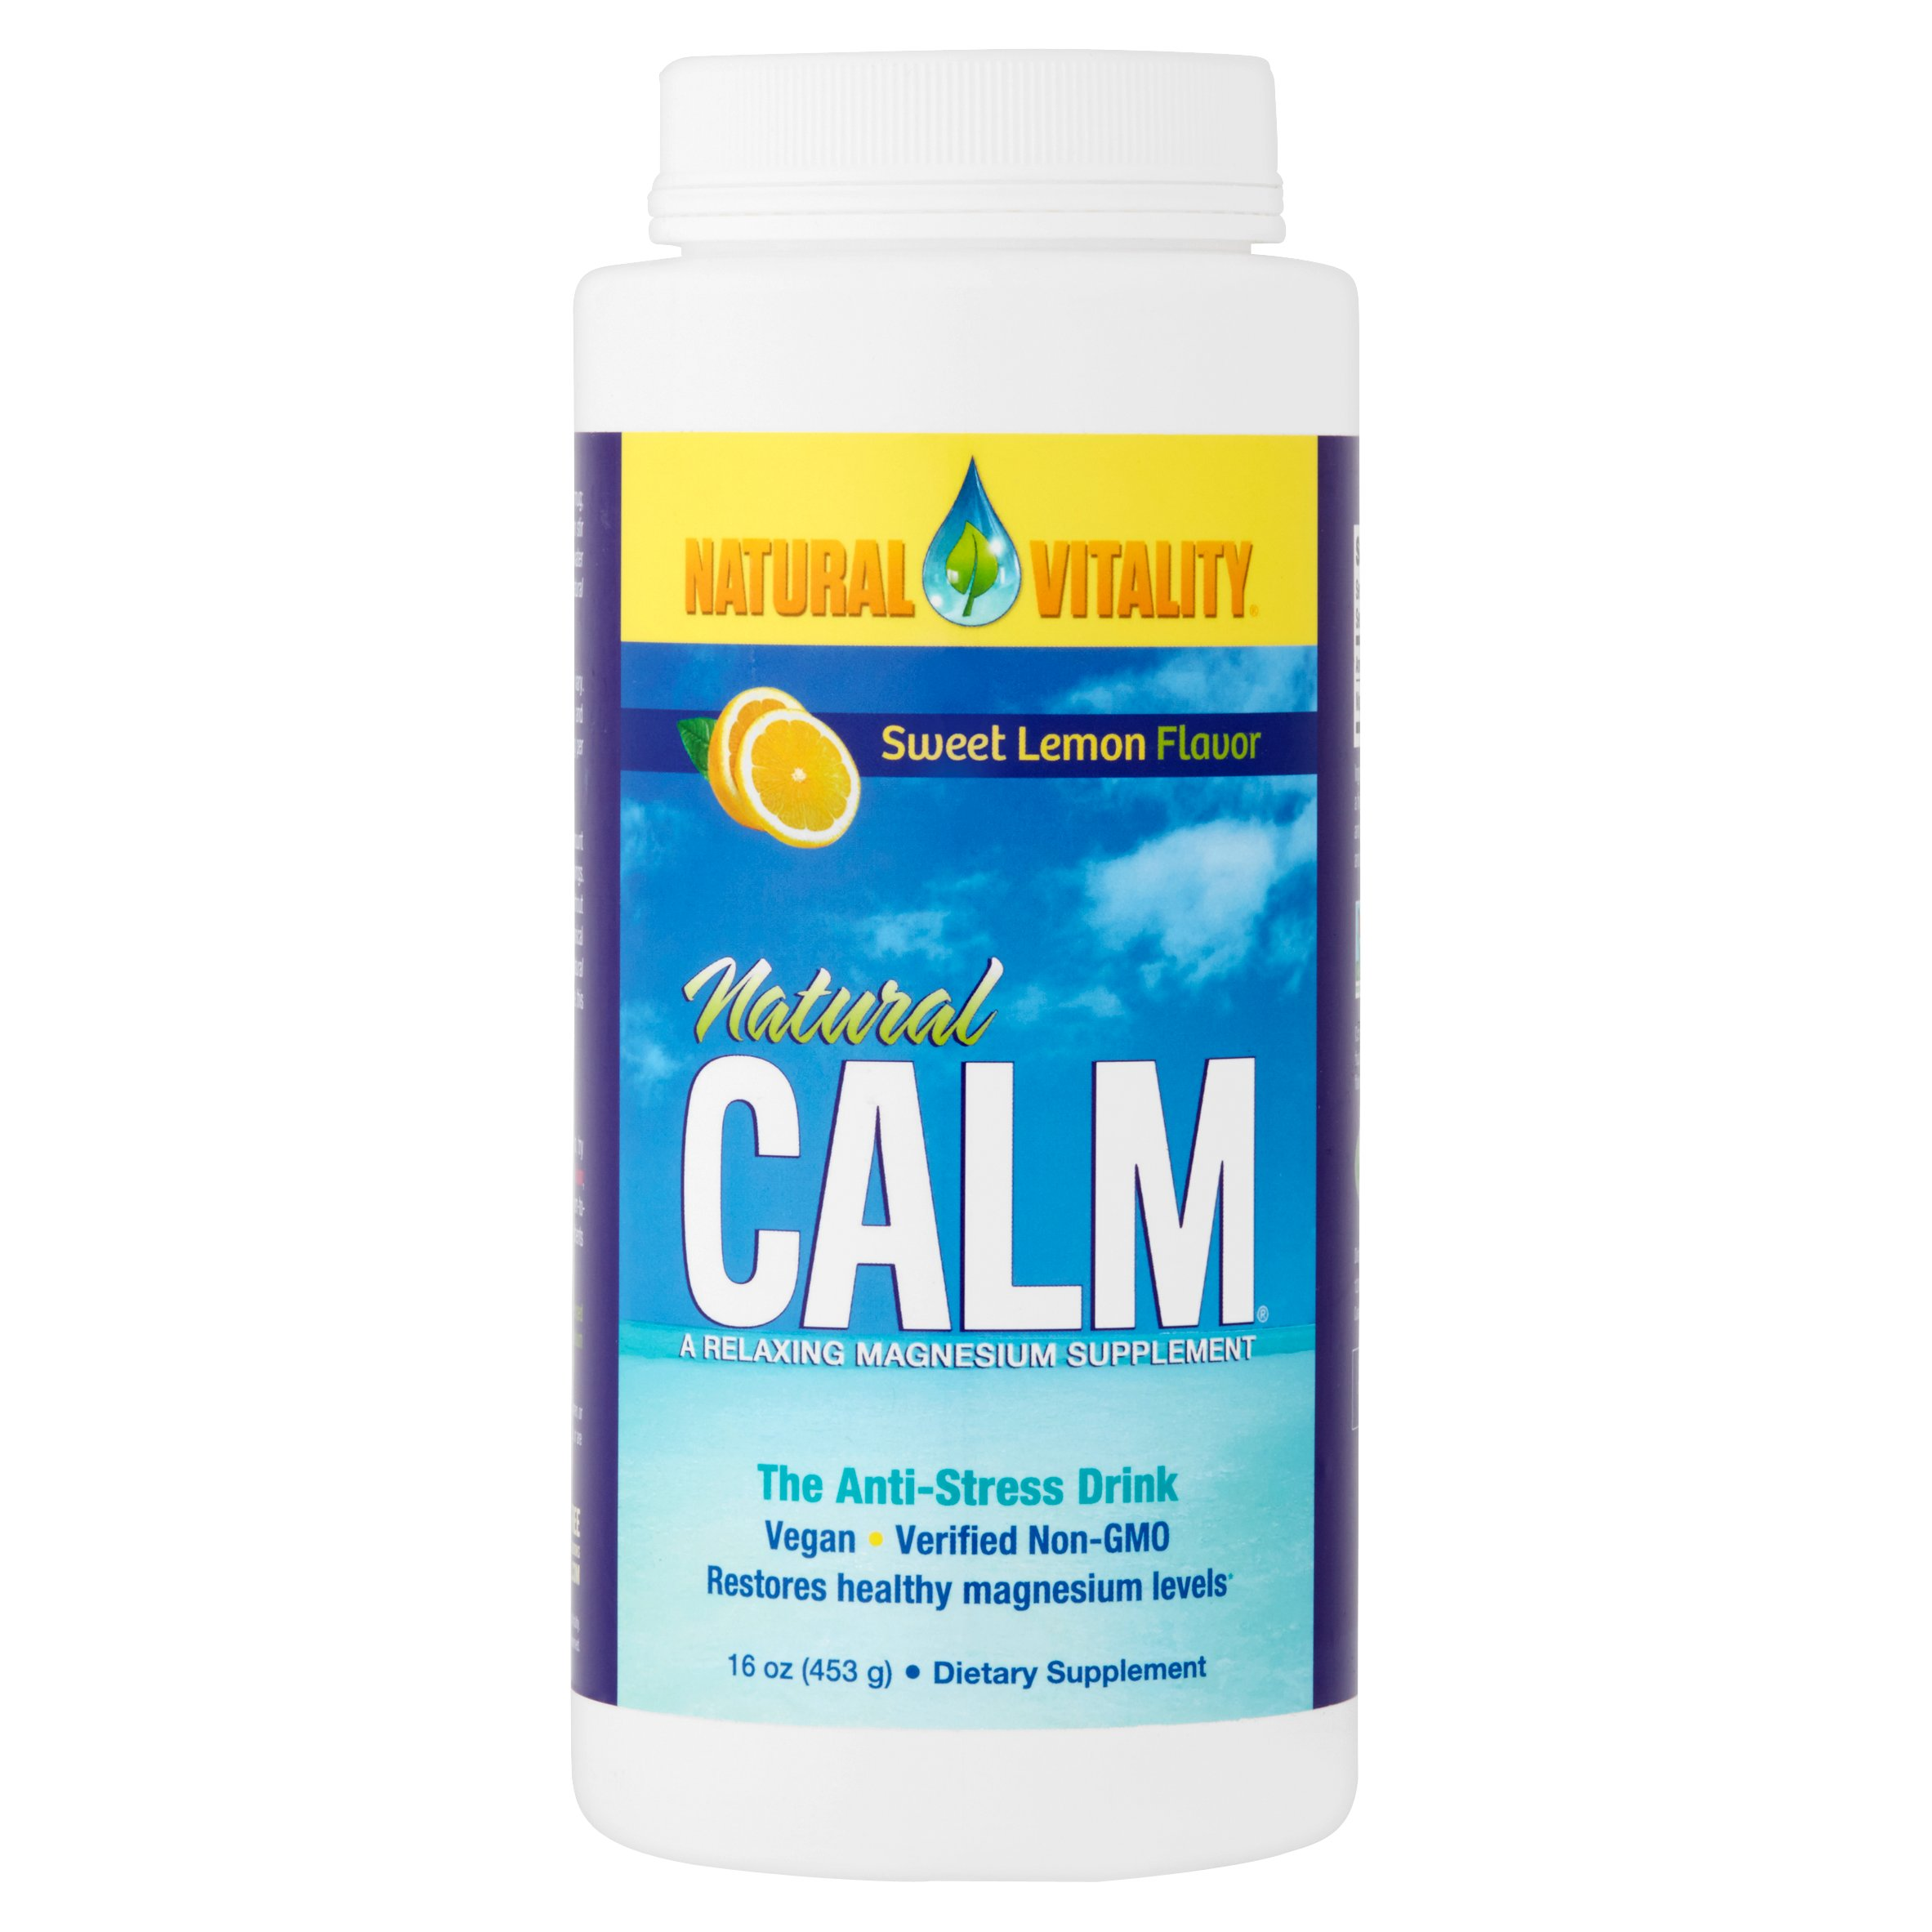 Natural Vitality Sweet Lemon Flavor Natural Calm Magnesium Dietary Supplement, 16 oz